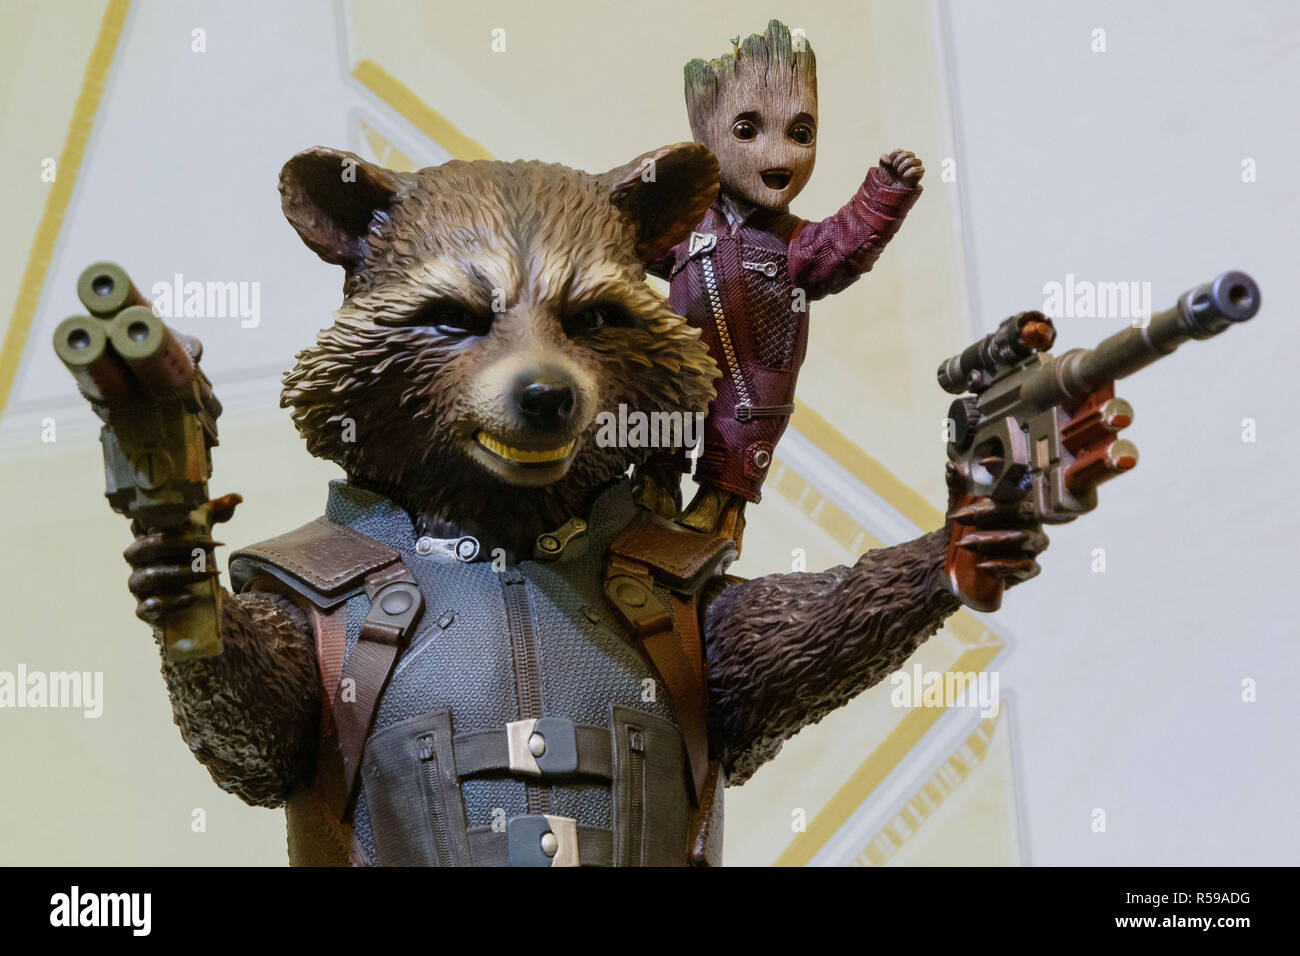 Rocket Raccoon Stock Photos & Rocket Raccoon Stock Images